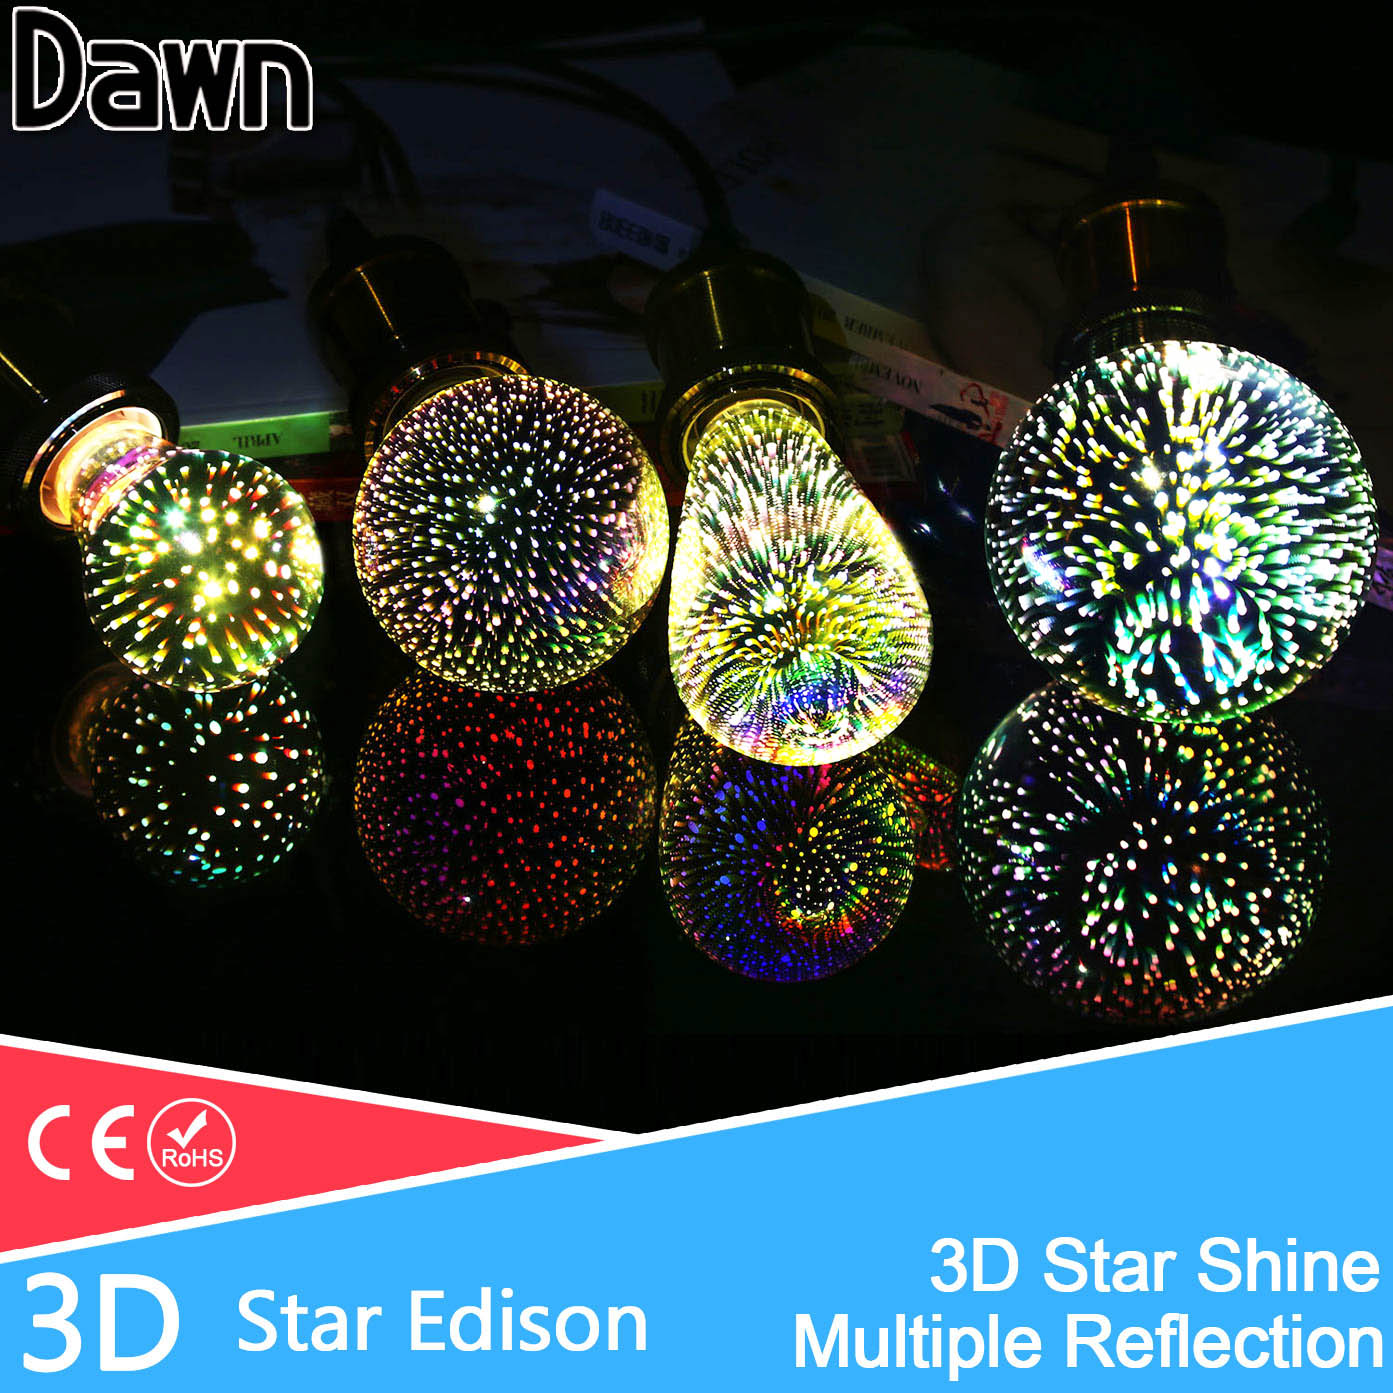 Silver Plated Glass 3D Star LED Edison Bulb 220v A60 ST64 G80 G95 Holiday Christmas Decoration Bar LED Lamp Lamparas Bombillas джинсы мужские g star raw 604046 gs g star arc